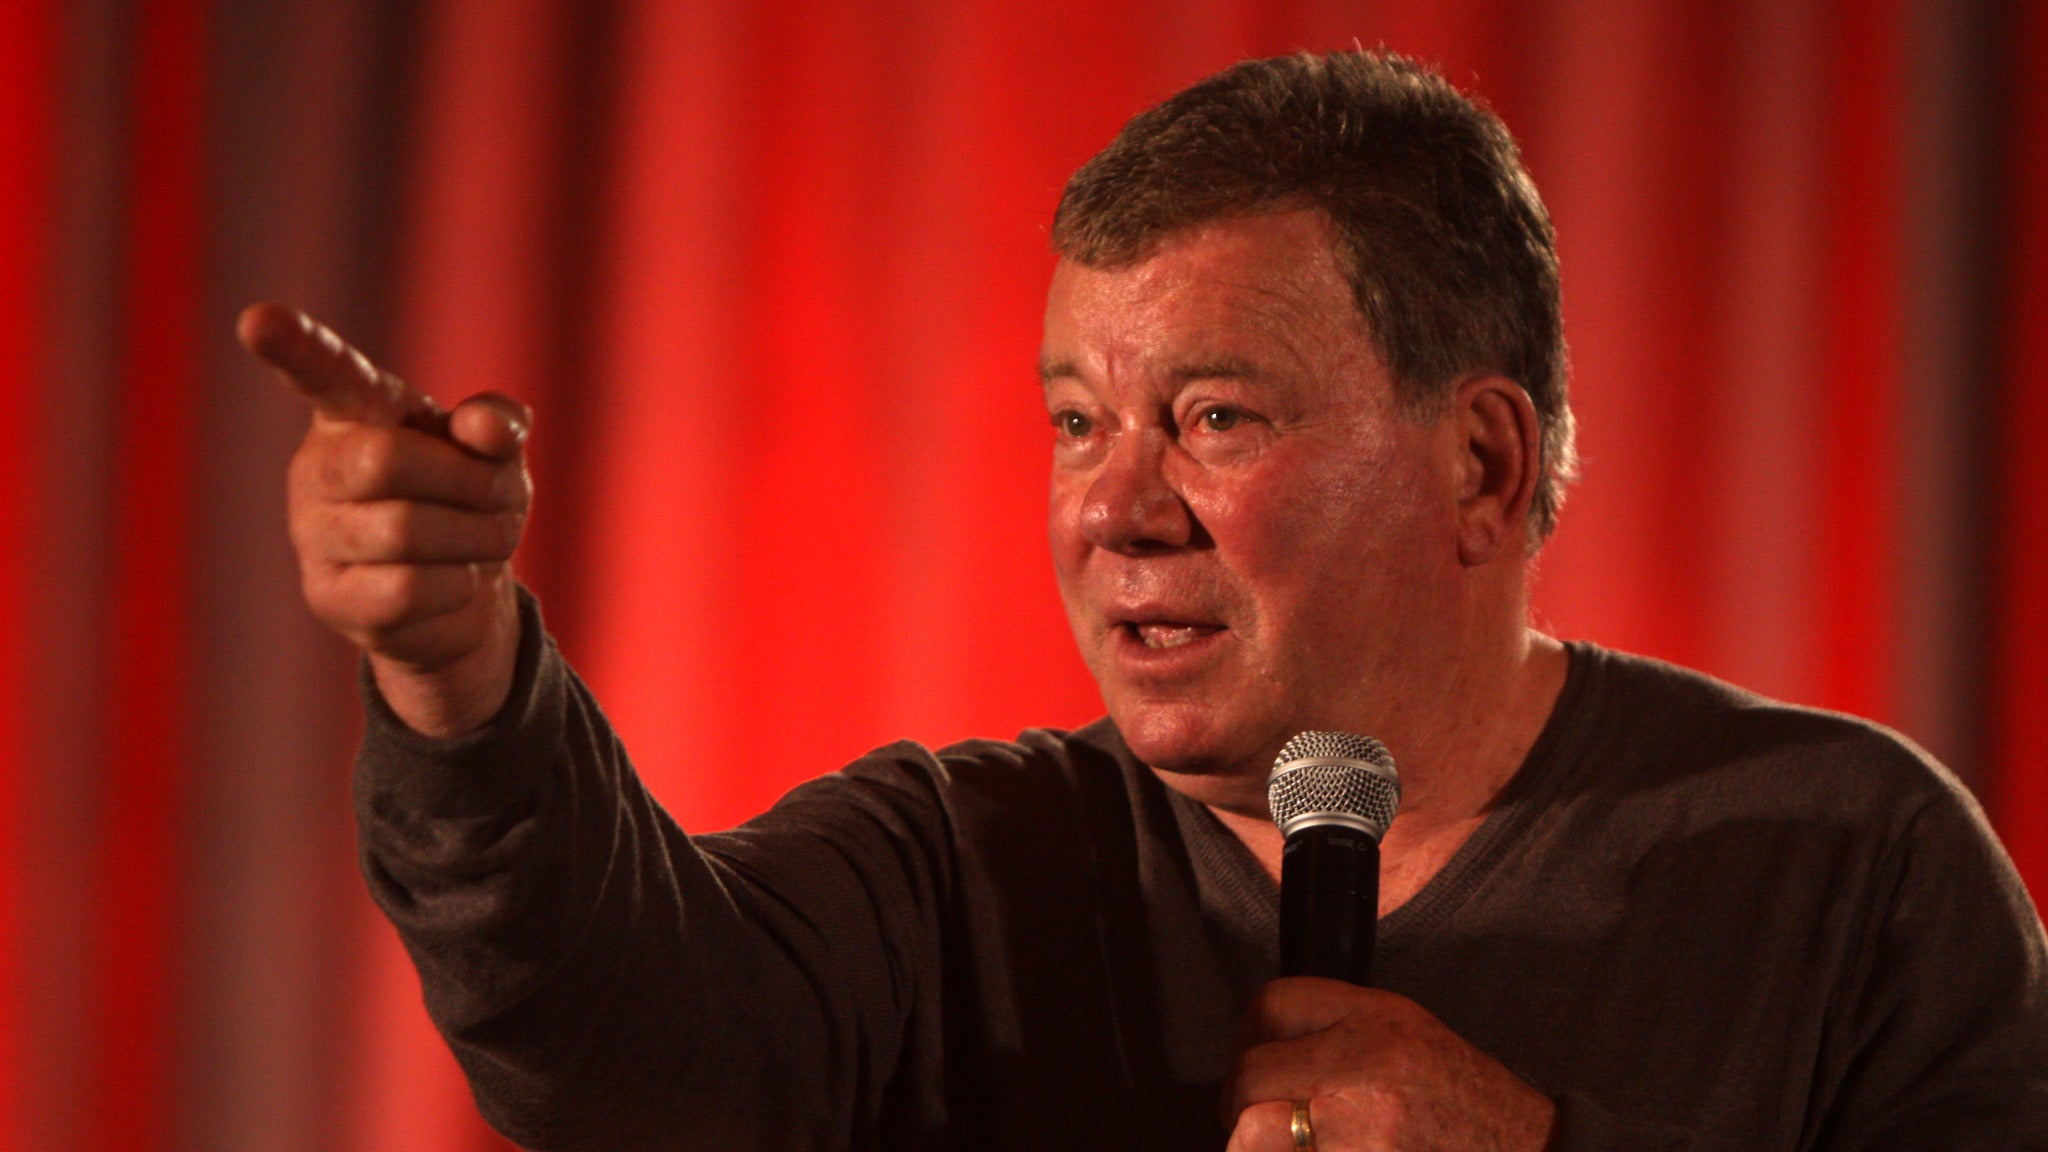 William Shatner at Orpheum Theatre (Phoenix)